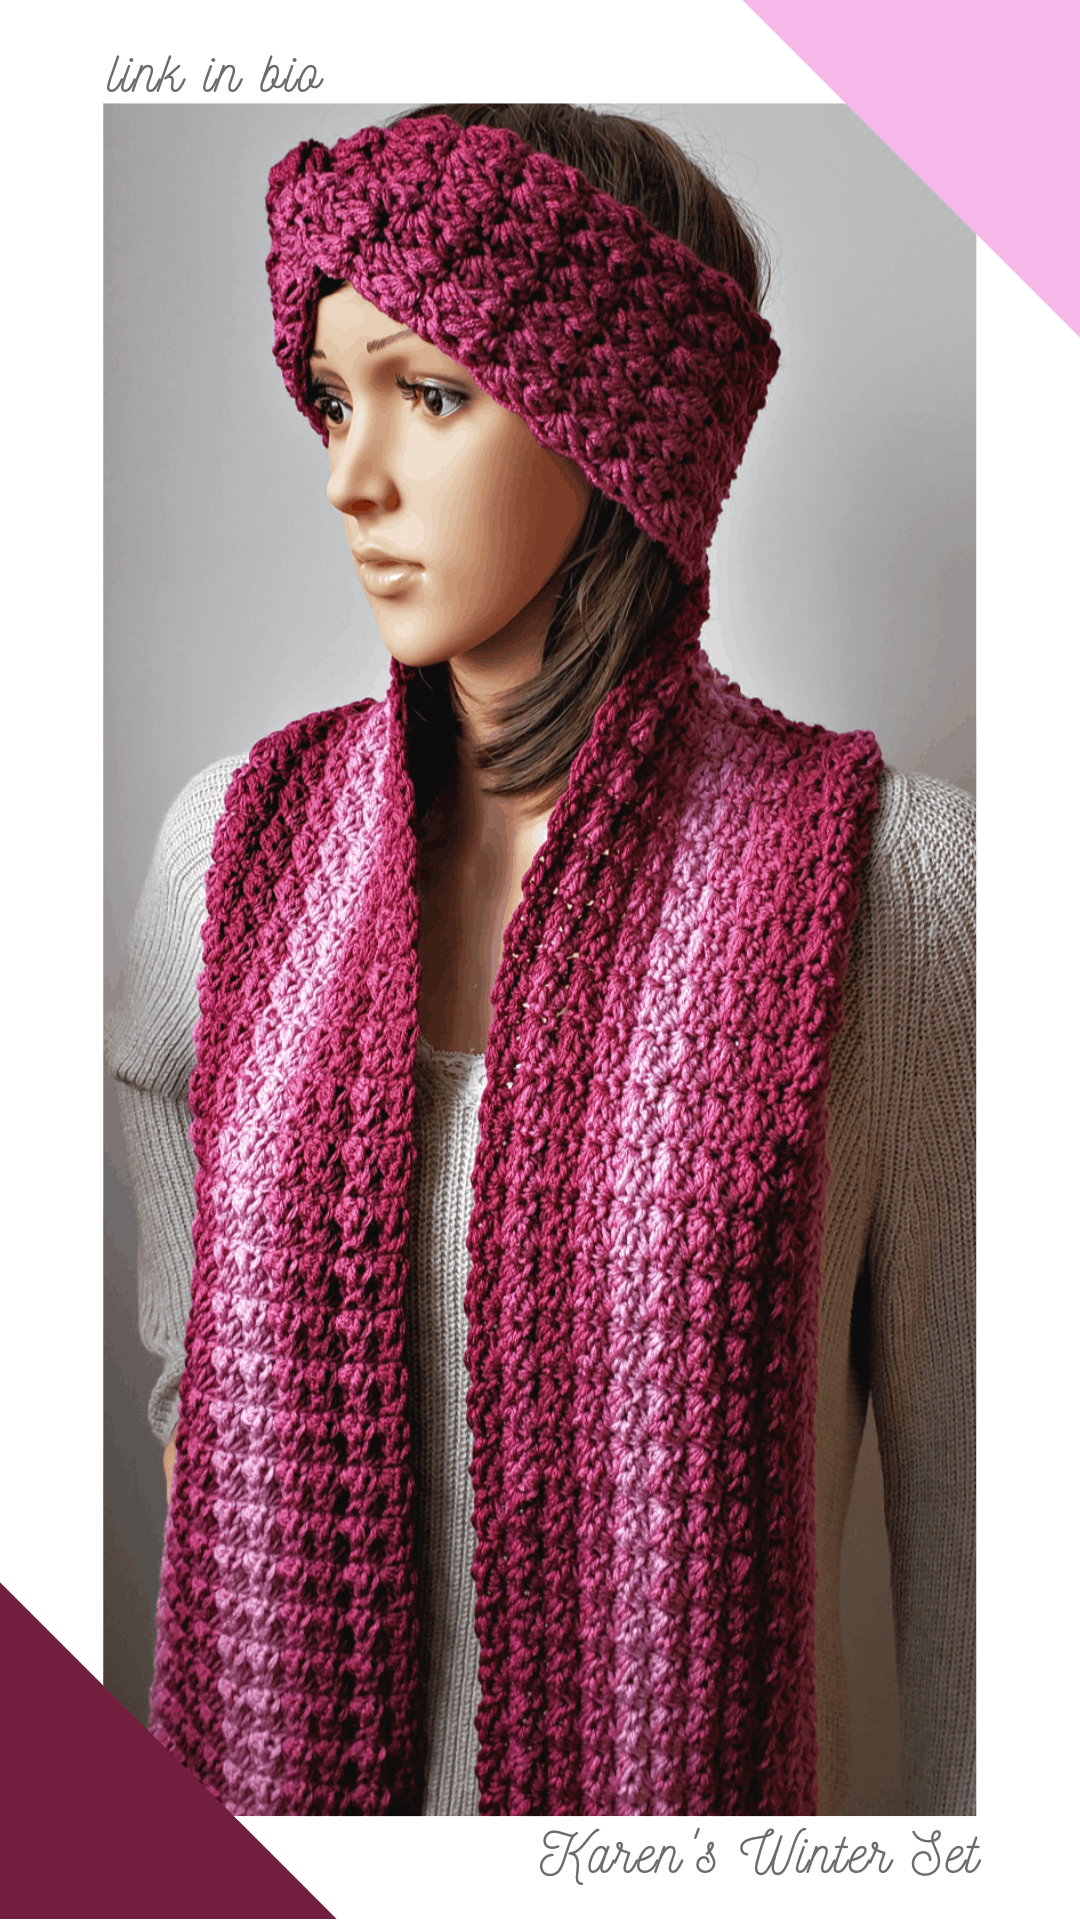 Karen\'s Winter Headband Crochet Pattern is made with medium weight yarn [4] and a 5.5 mm (I) hook. This free pattern was designed to match Karen\'s Winter Scarf and to be worn as a crocheted set. The pretty textured stitches are easy to crochet and only take single crochet, half double crochet and double crochet stitches.